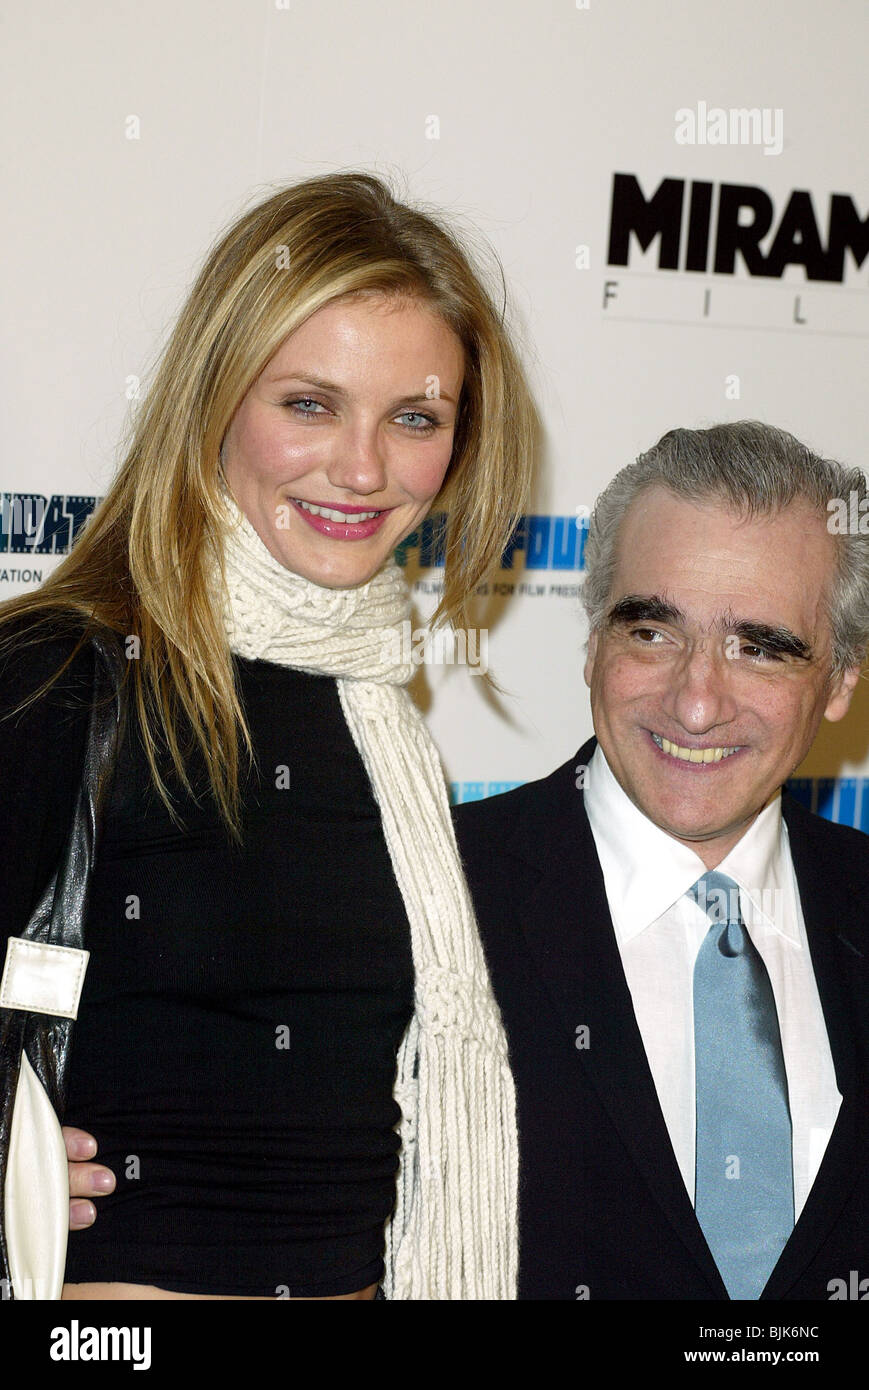 CAMERON DIAZ & MARTIN SCORSESE GANGS OF NEW YORK LA PREMIERE DGA LOS ANGELES USA 17 December 2002 - Stock Image